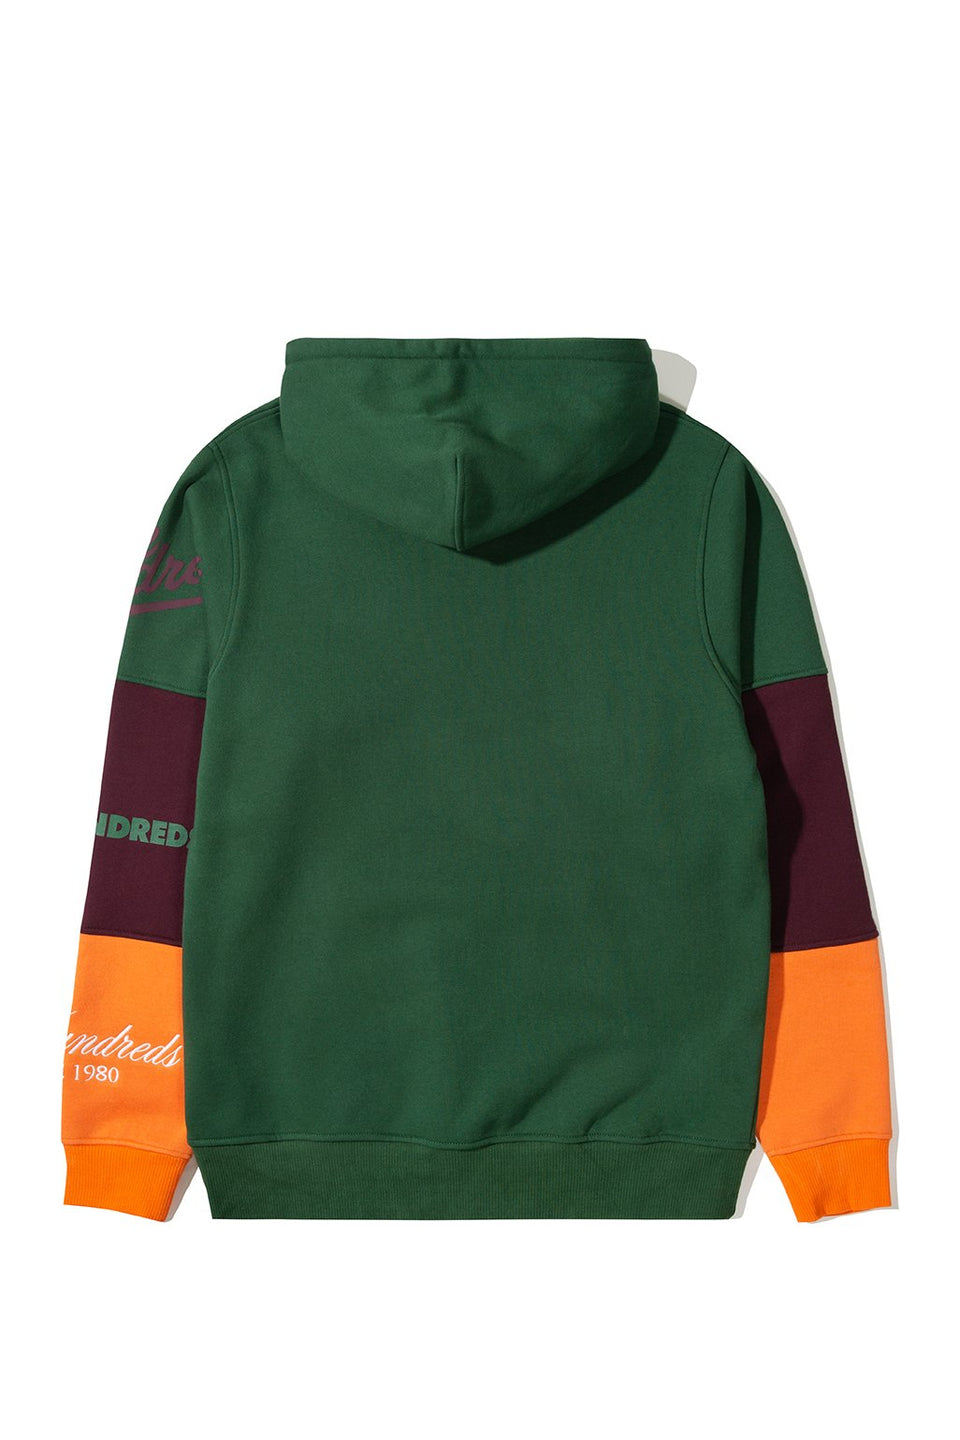 The Hundreds Hollow Pullover Hoodie TOPS Hunter Green